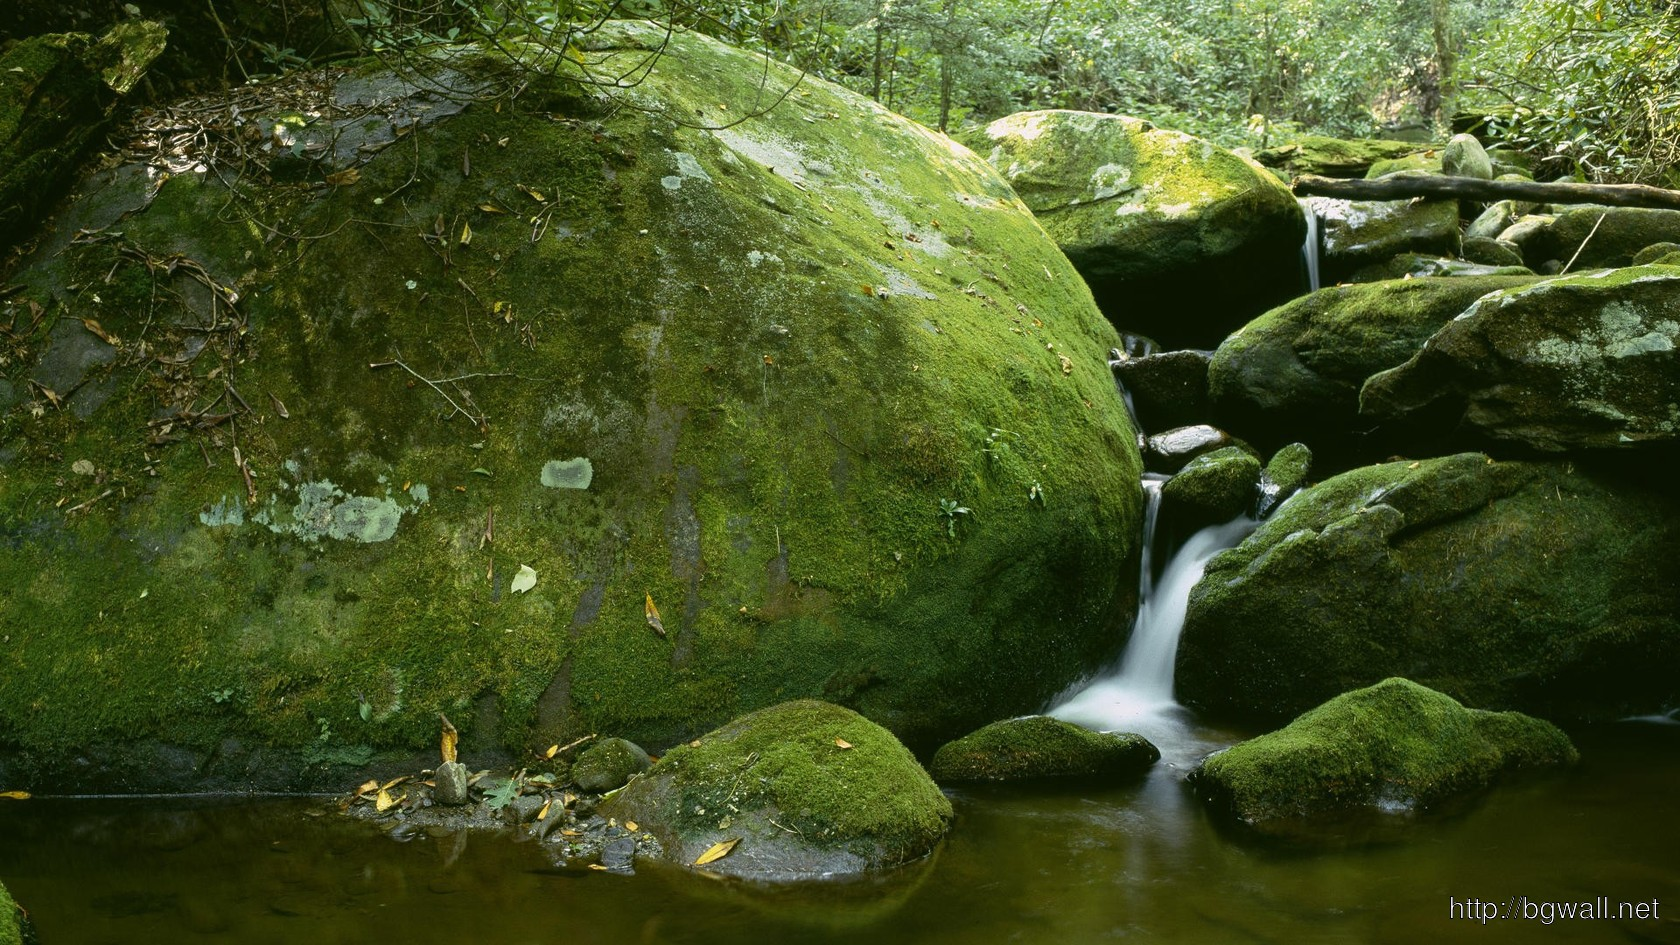 Download Roaring Fork Great Smoky Mountains National Park Wallpaper Full Size